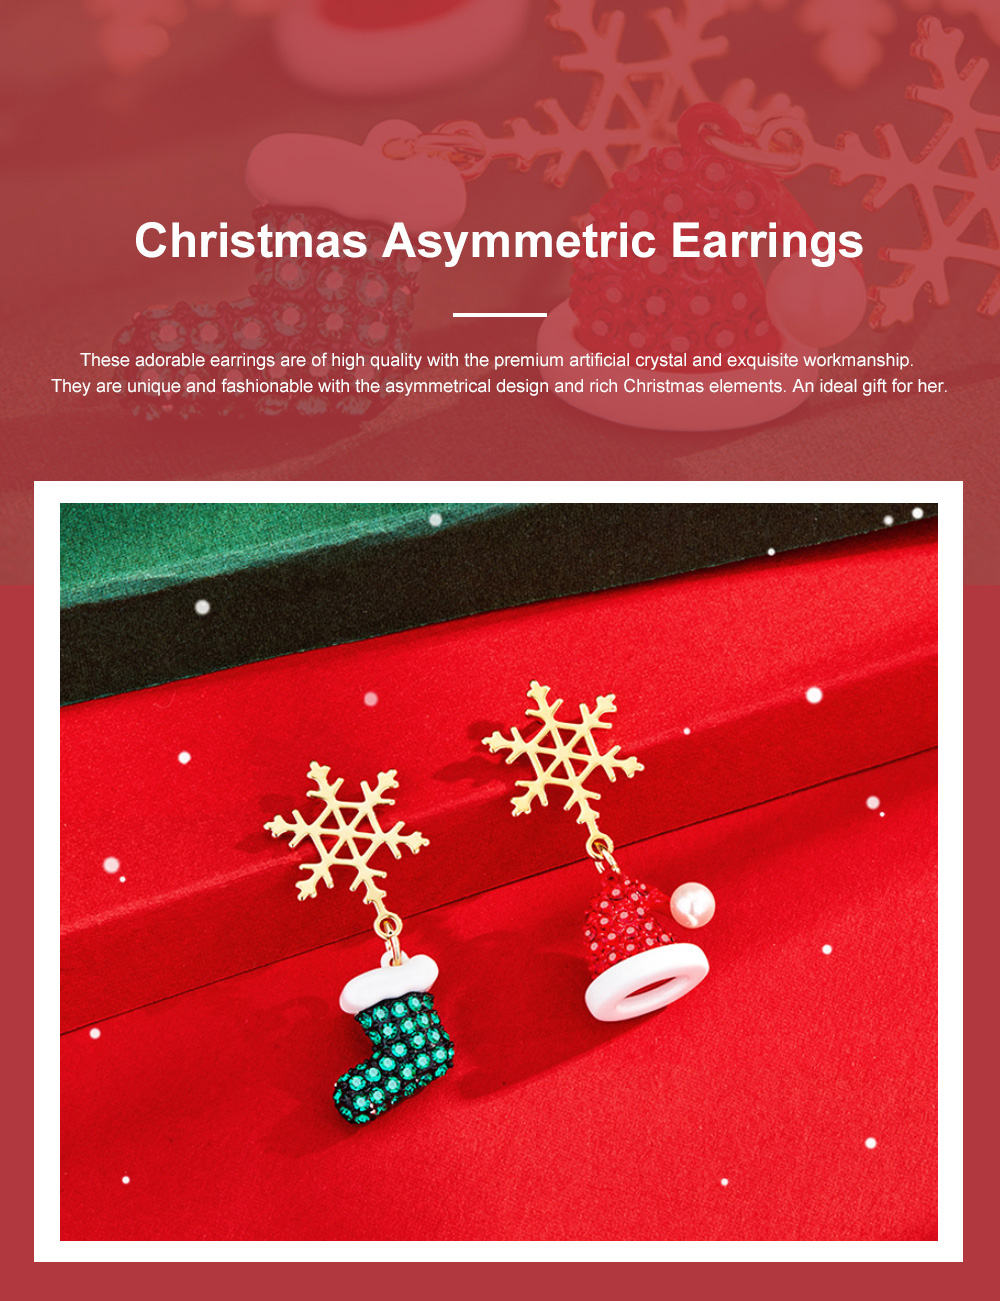 Christmas Snowflake Earrings for Women Unique Asymmetric Earrings Studs Party Jewelry for Christmas New Year Gift Giving 0